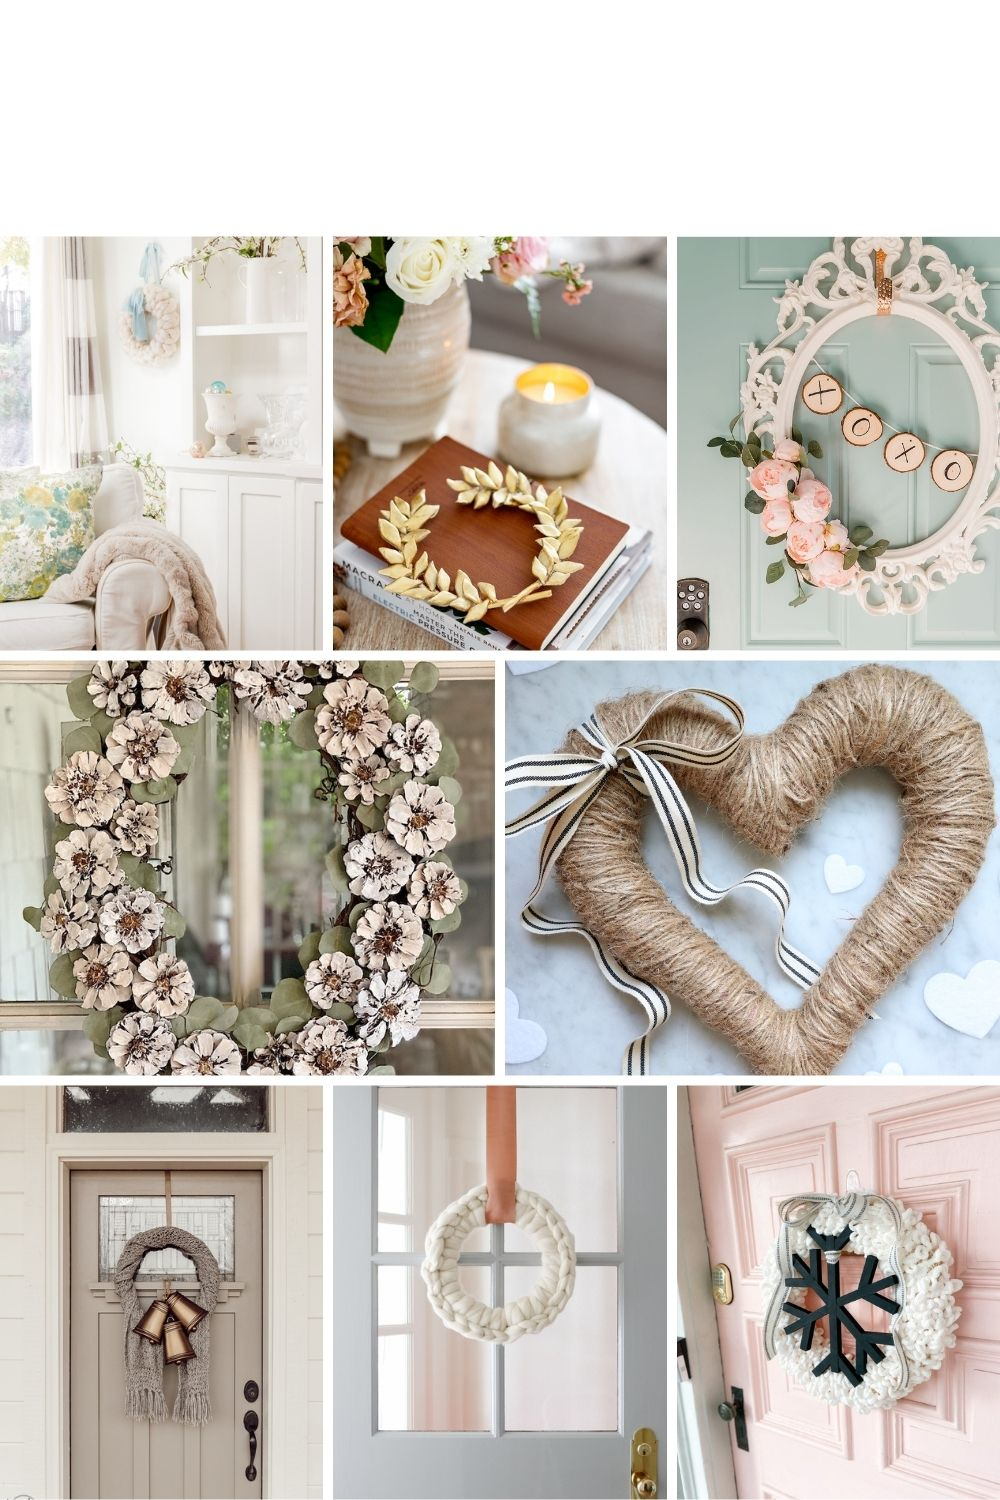 8 DIY Winter Wreath Ideas